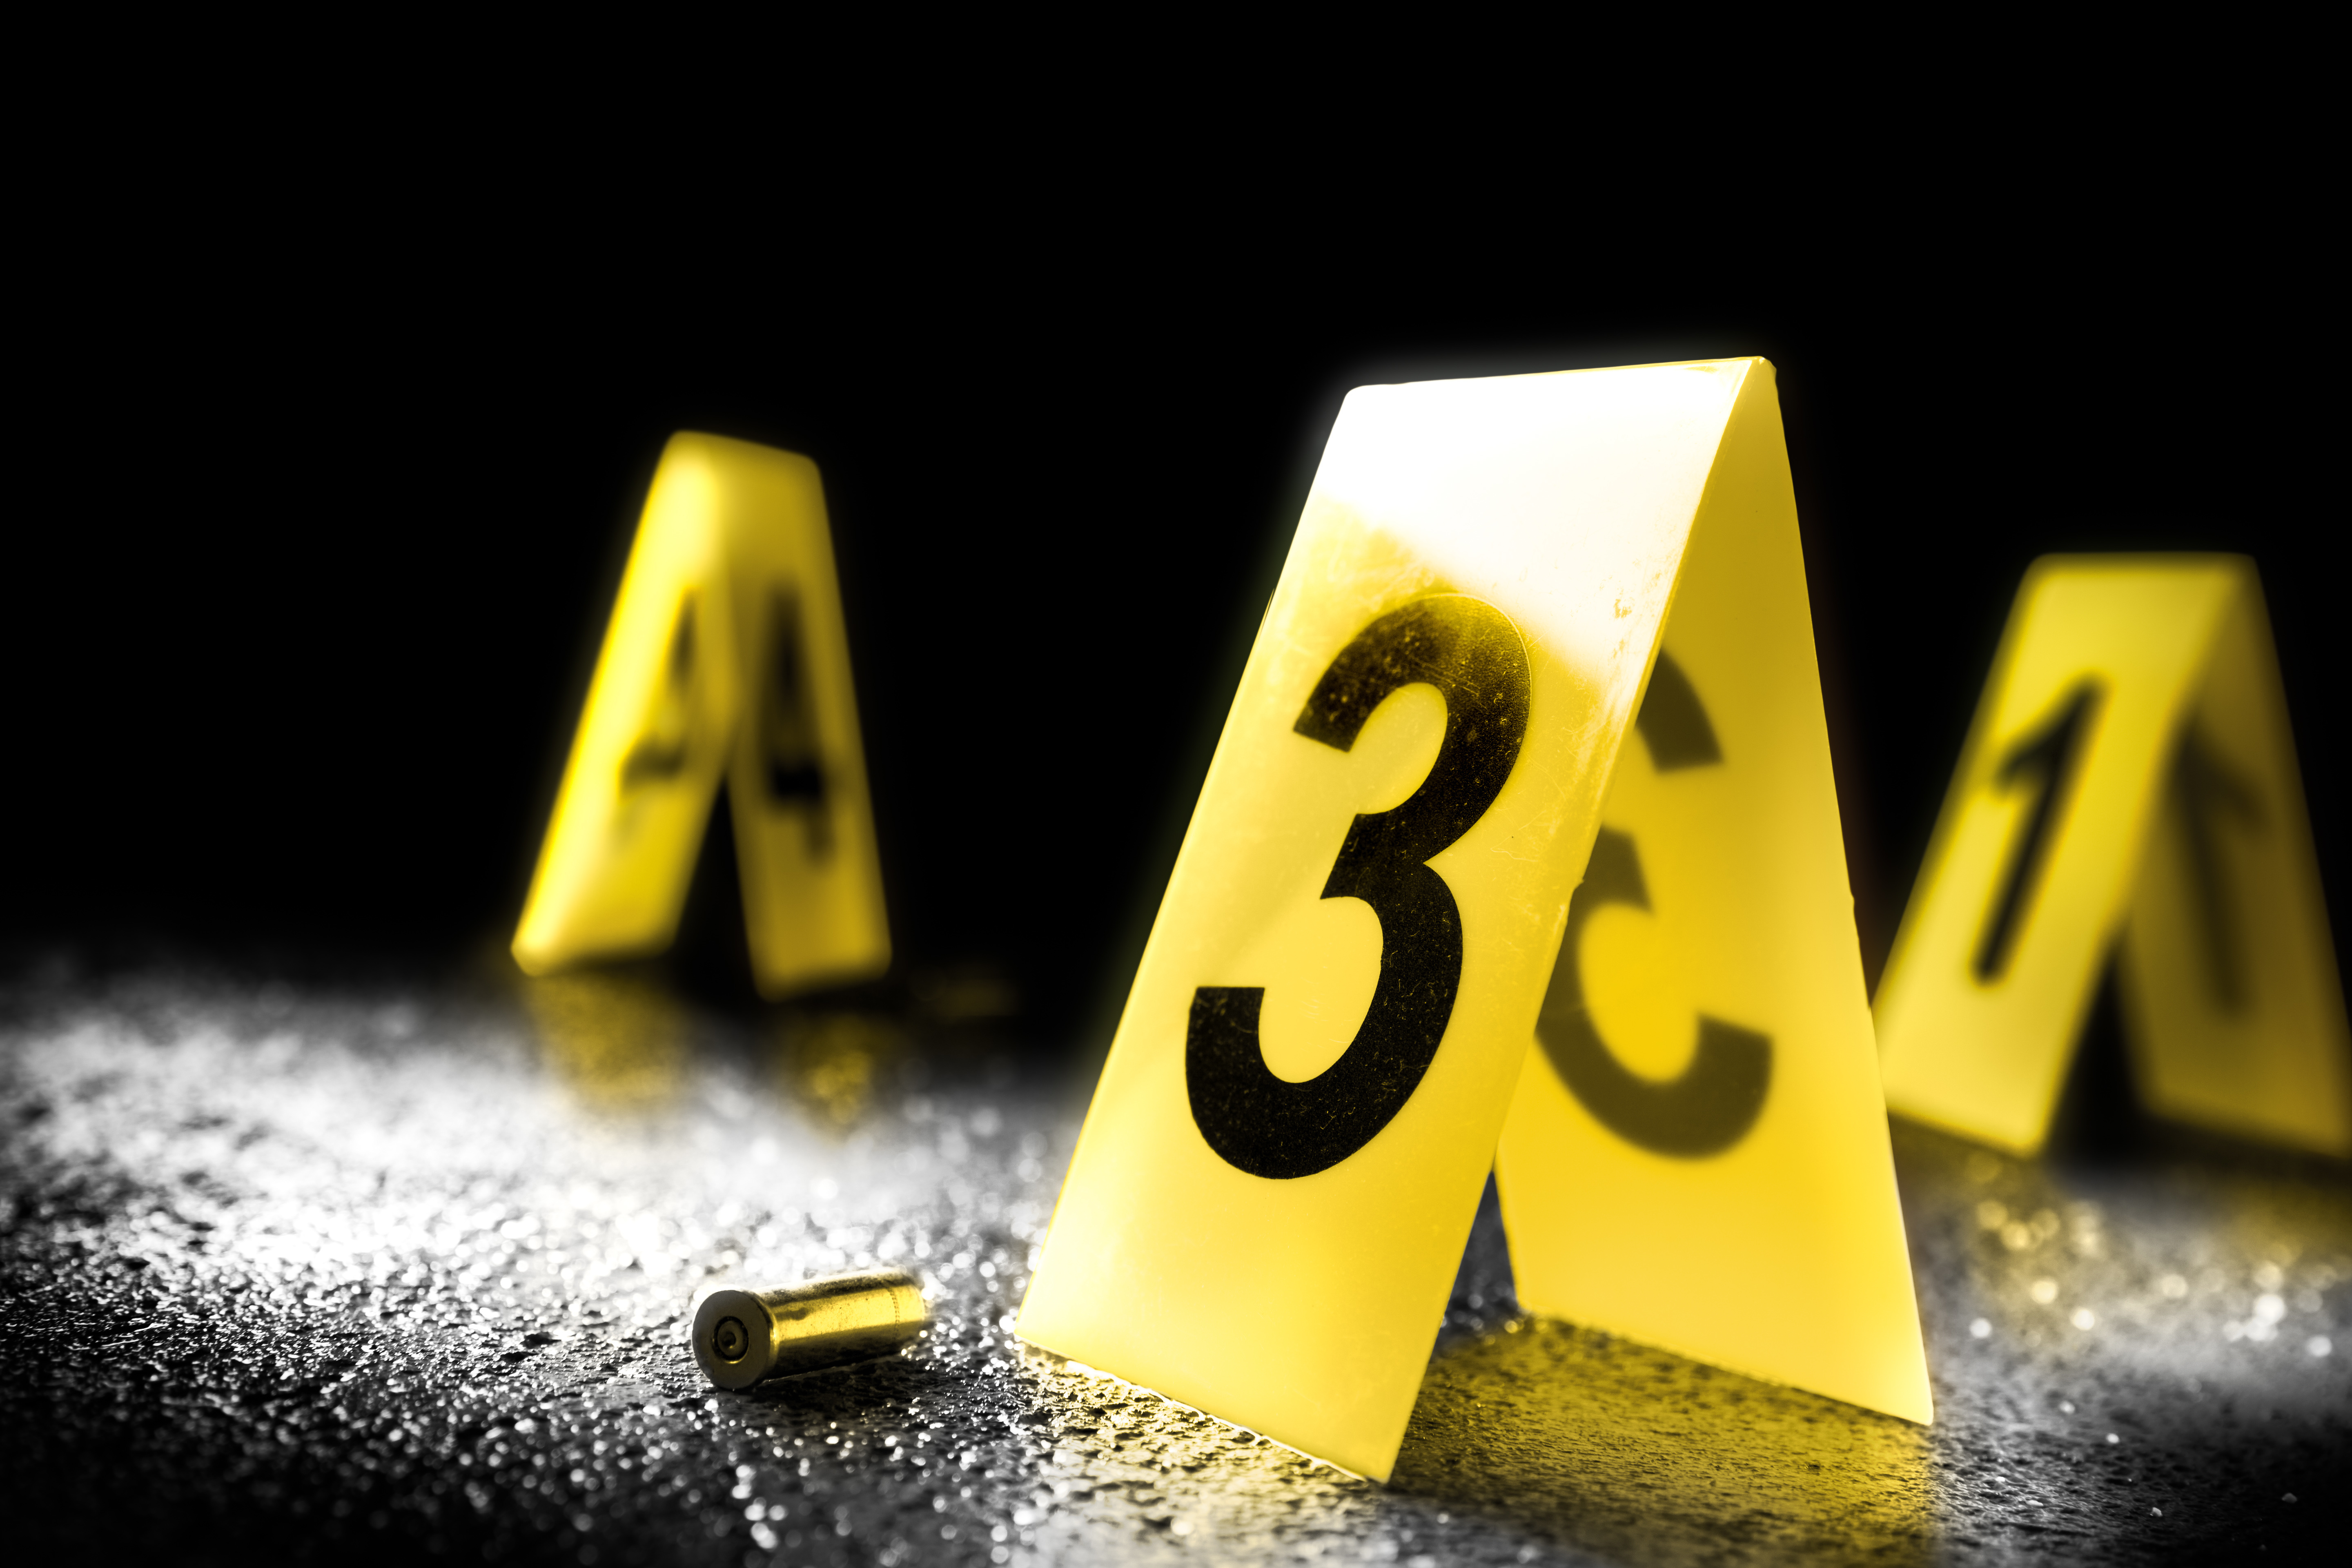 A teen girl was wounded in a shooting in Lawndale